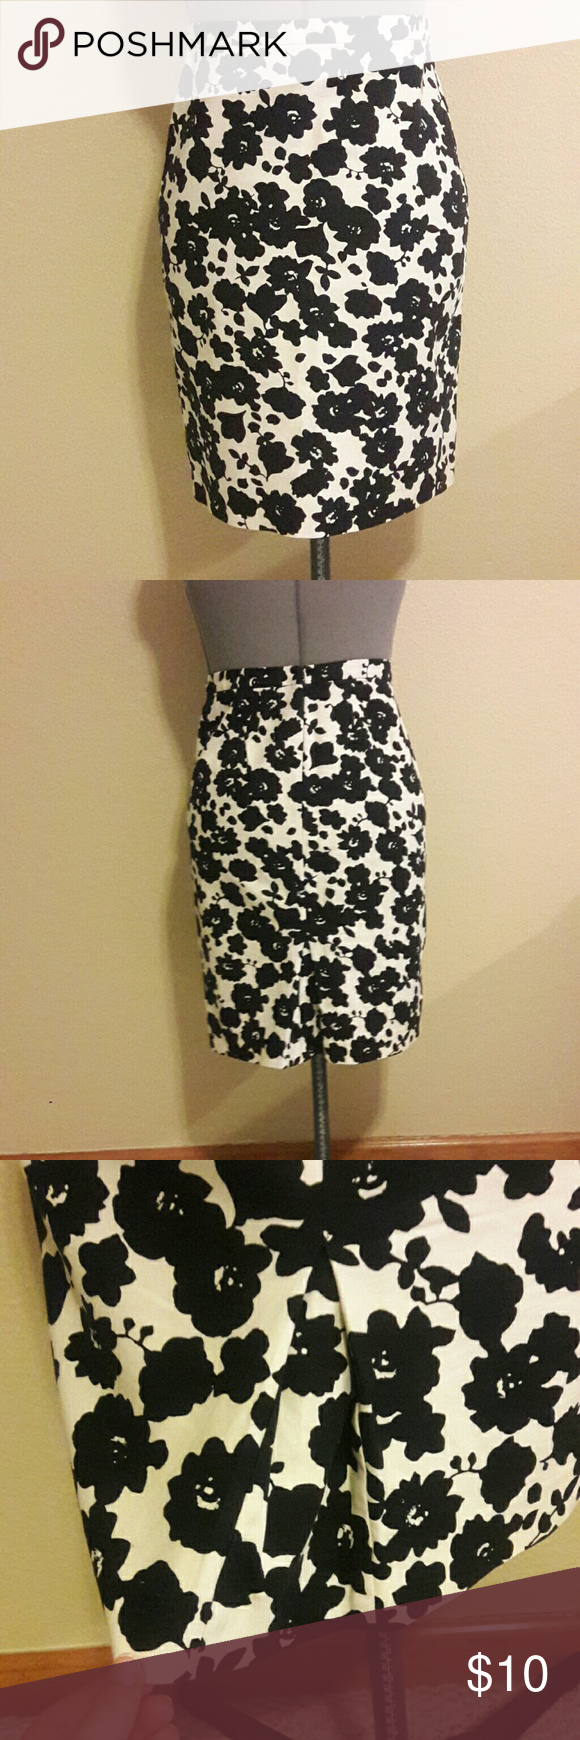 Flowered Pencil Skirt Pencil Skirt With Black Flowers On A White